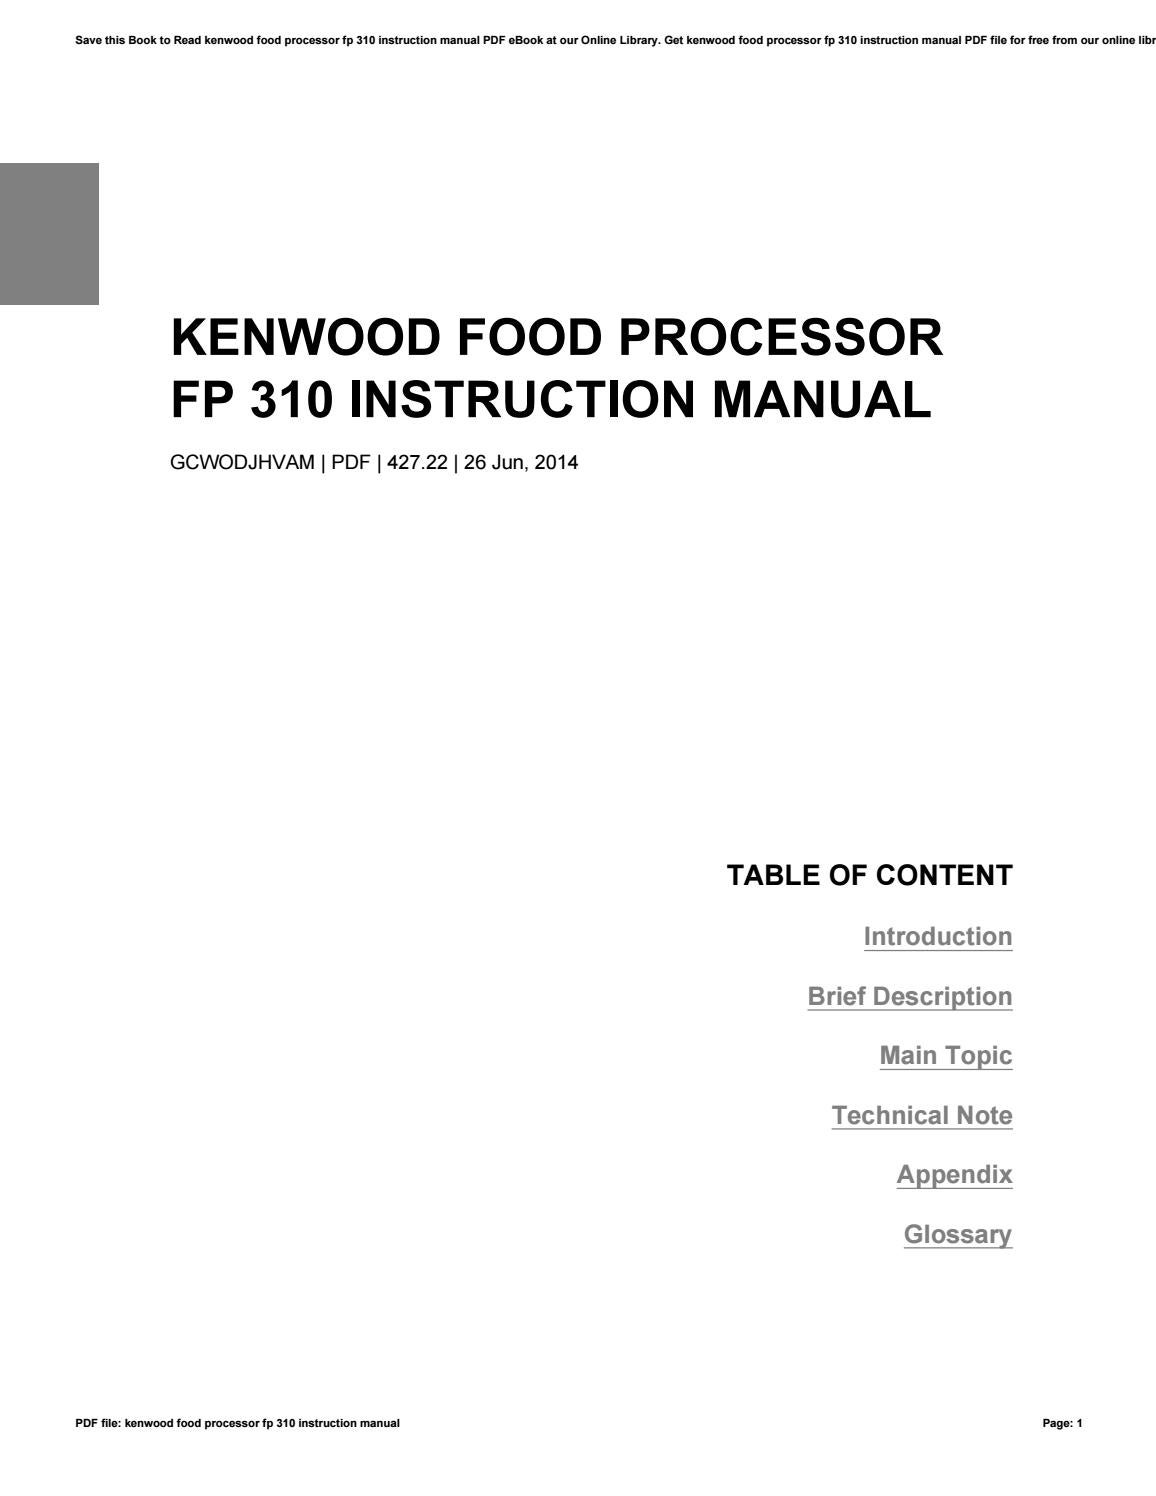 kenwood kdc-u263r user manual